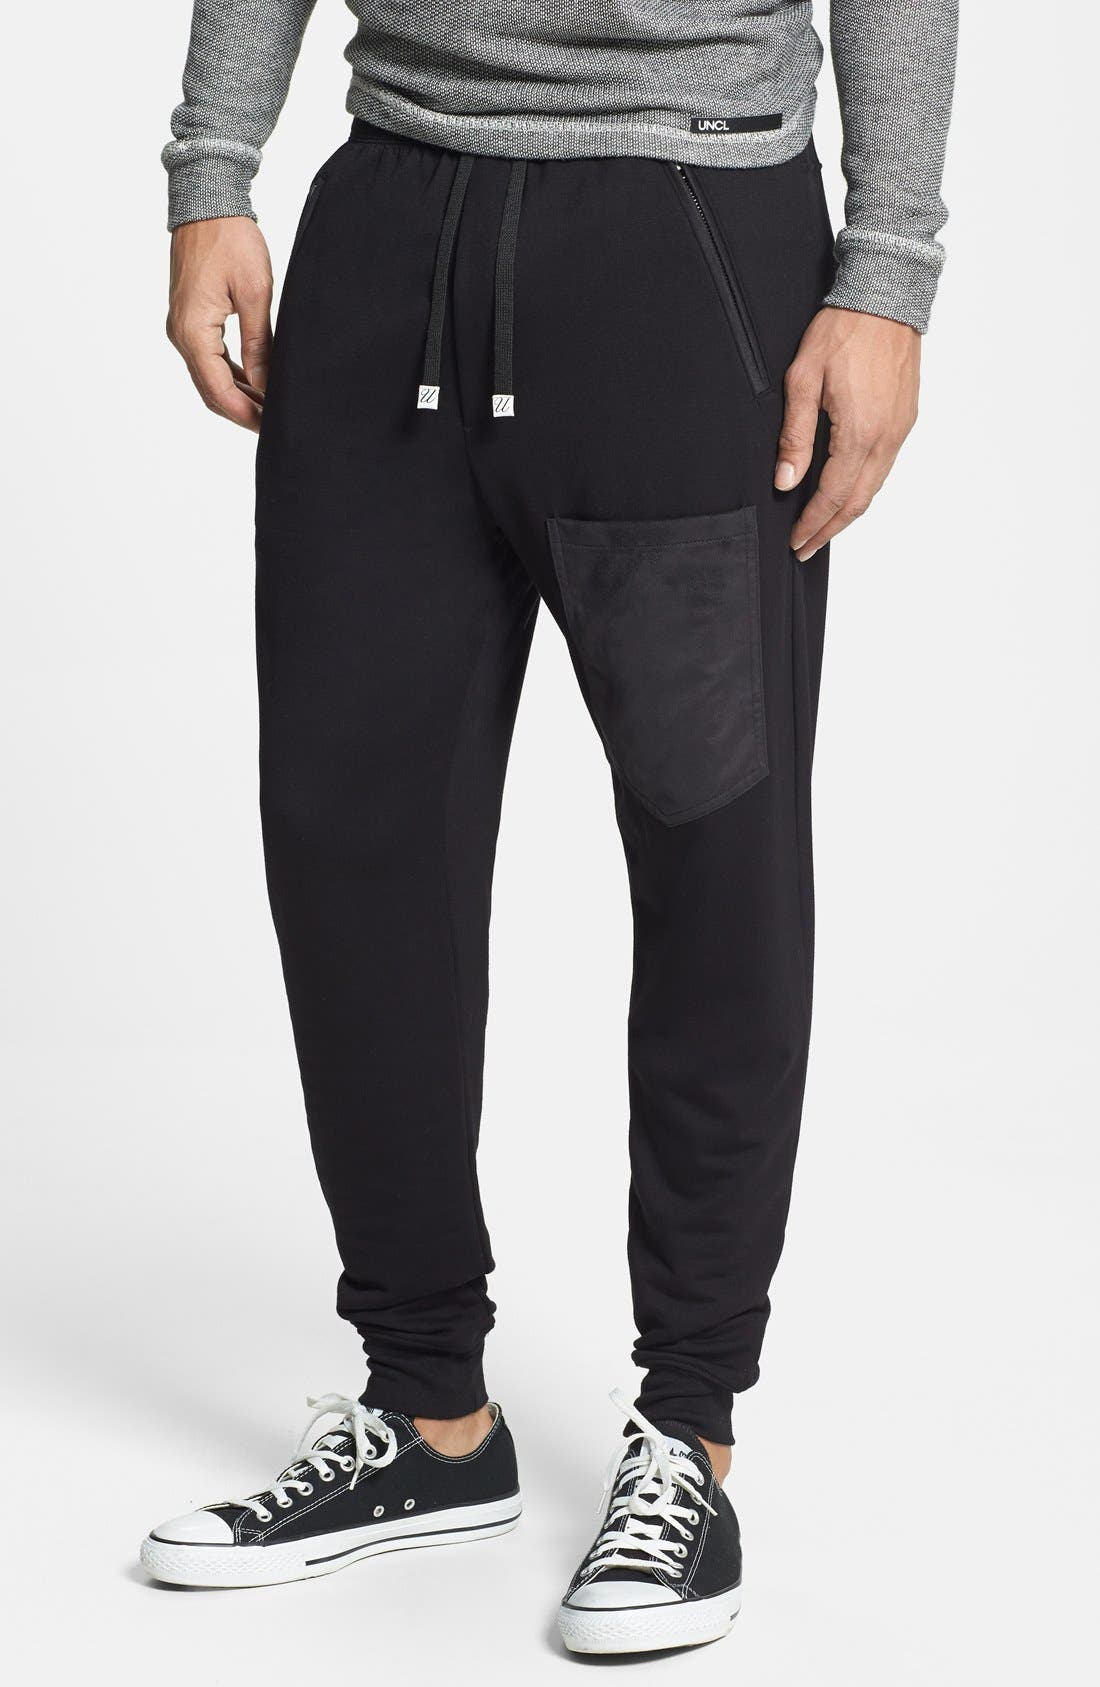 Alternate Image 1 Selected - UNCL Jogger Pants